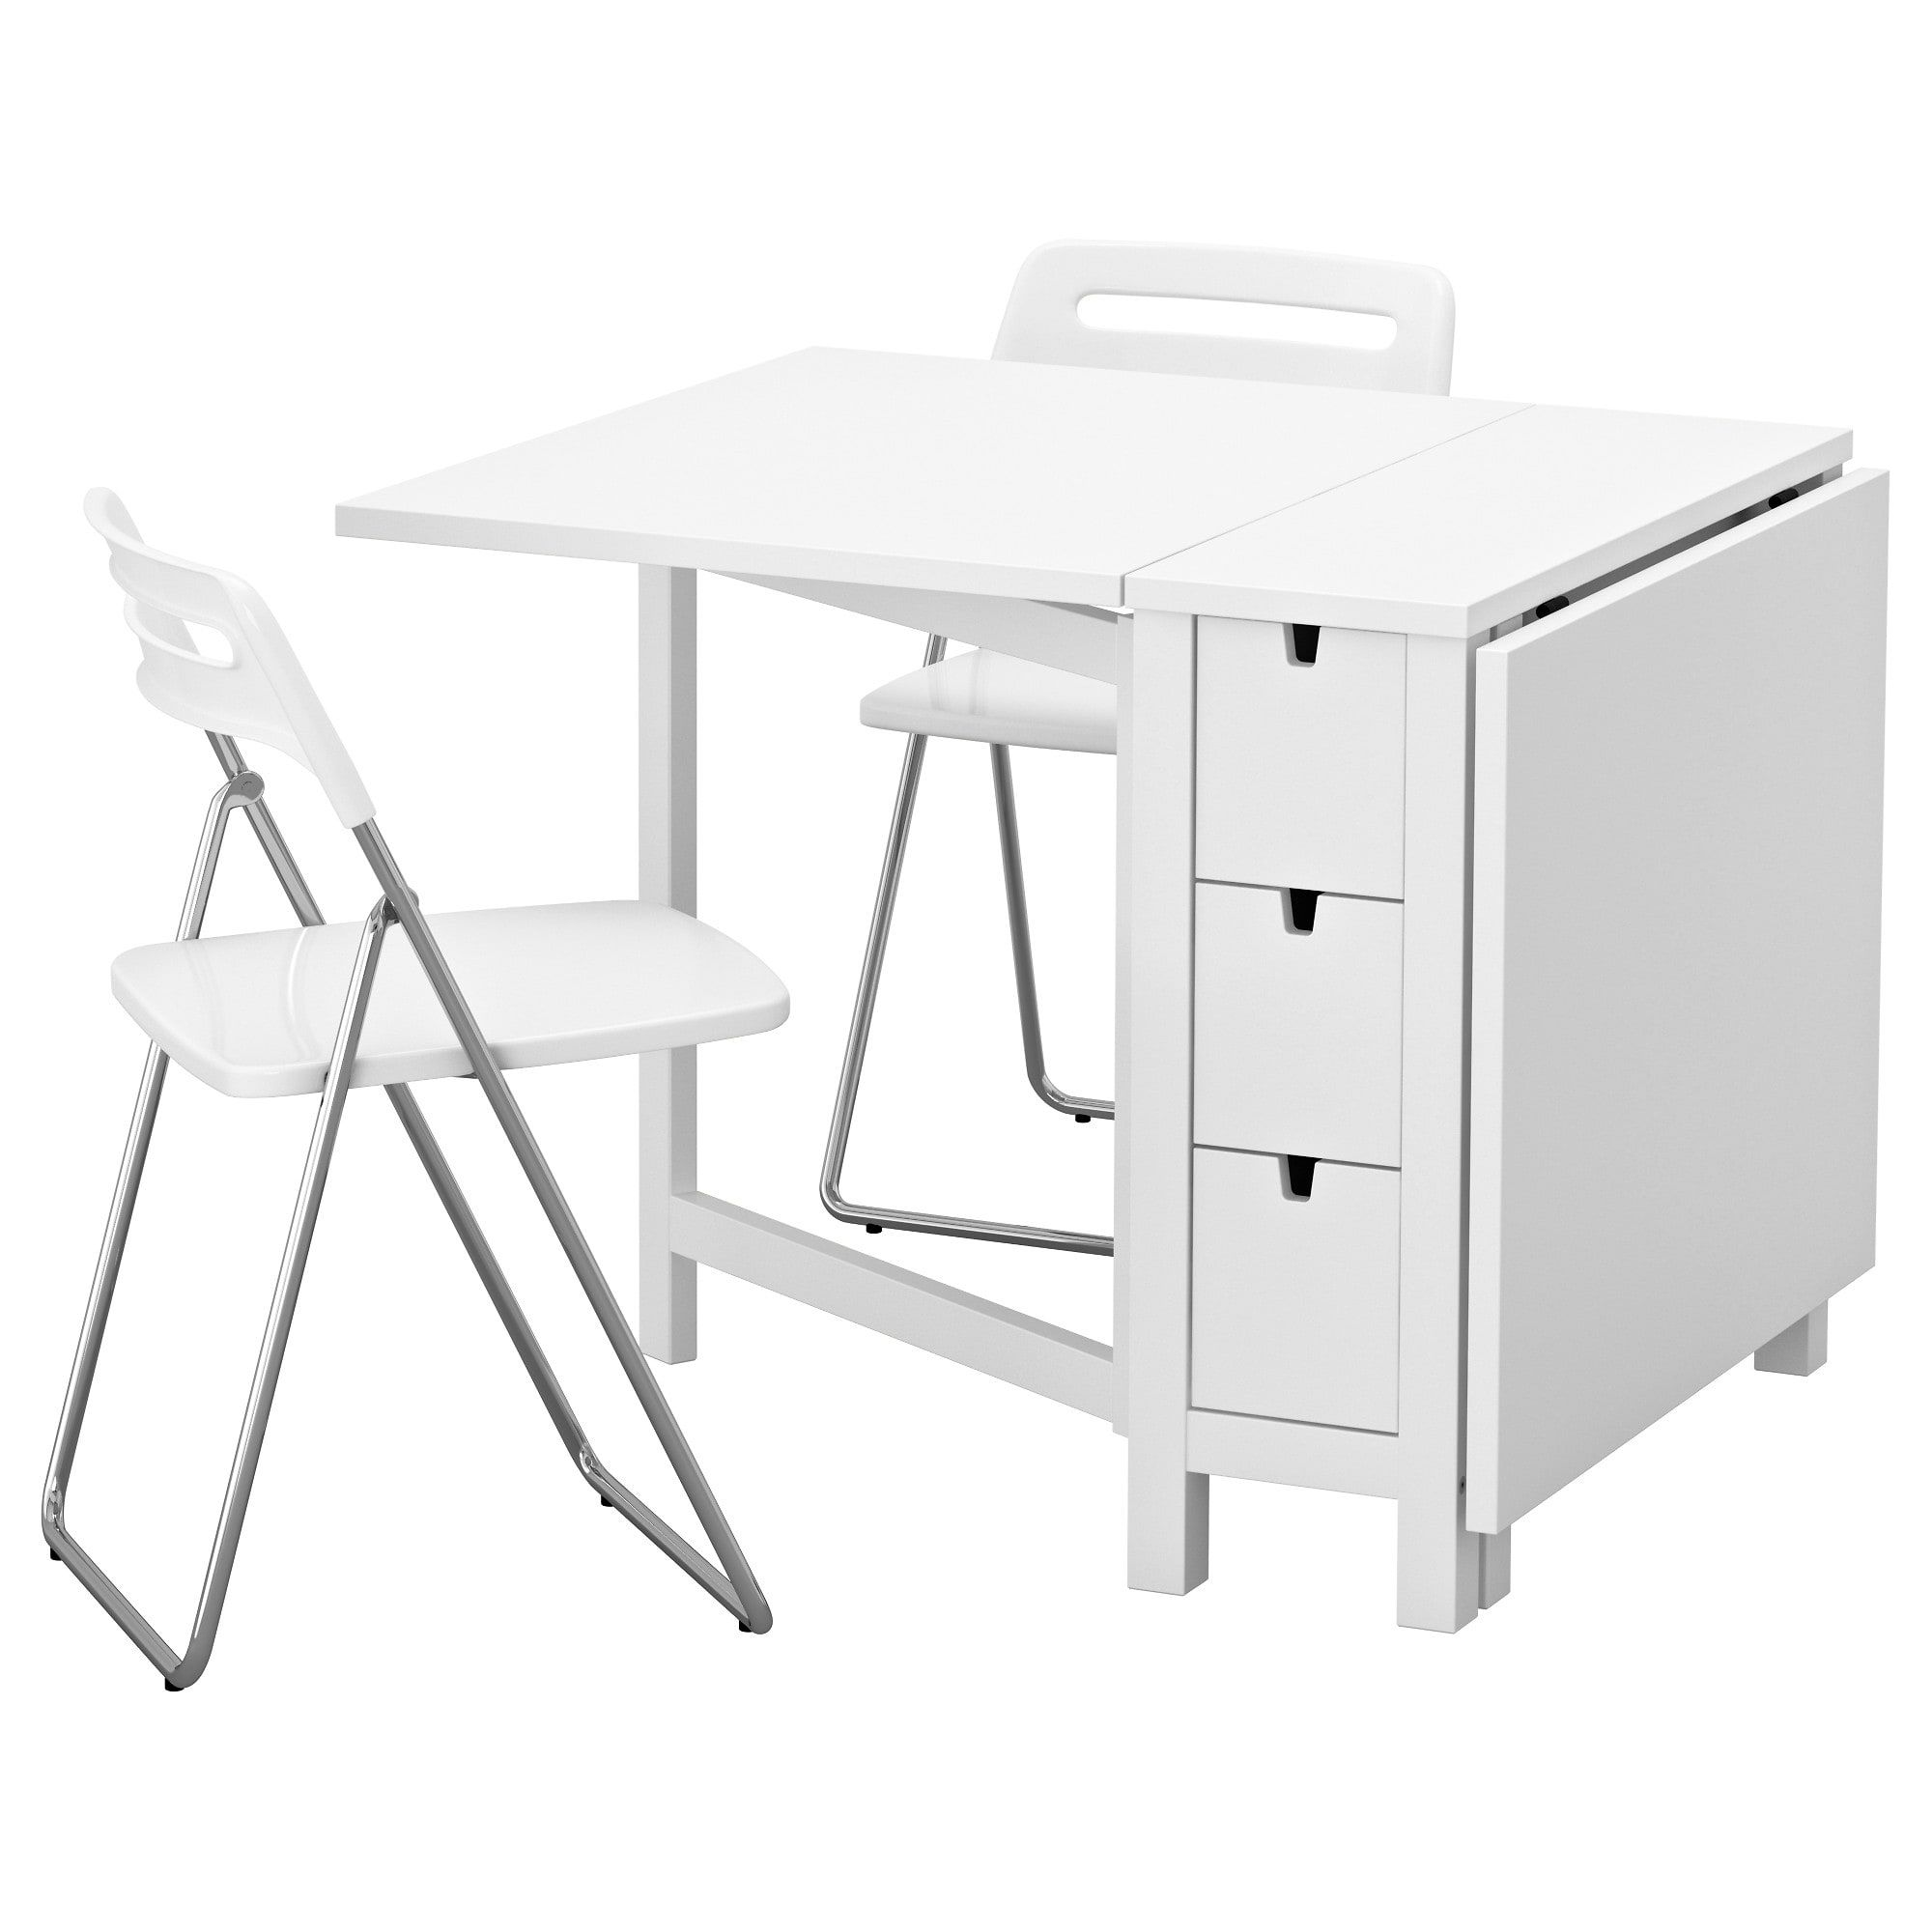 Furniture Home Furnishings Find Your Inspiration Ikea Folding Chairs Ikea Norden Table Ikea Table